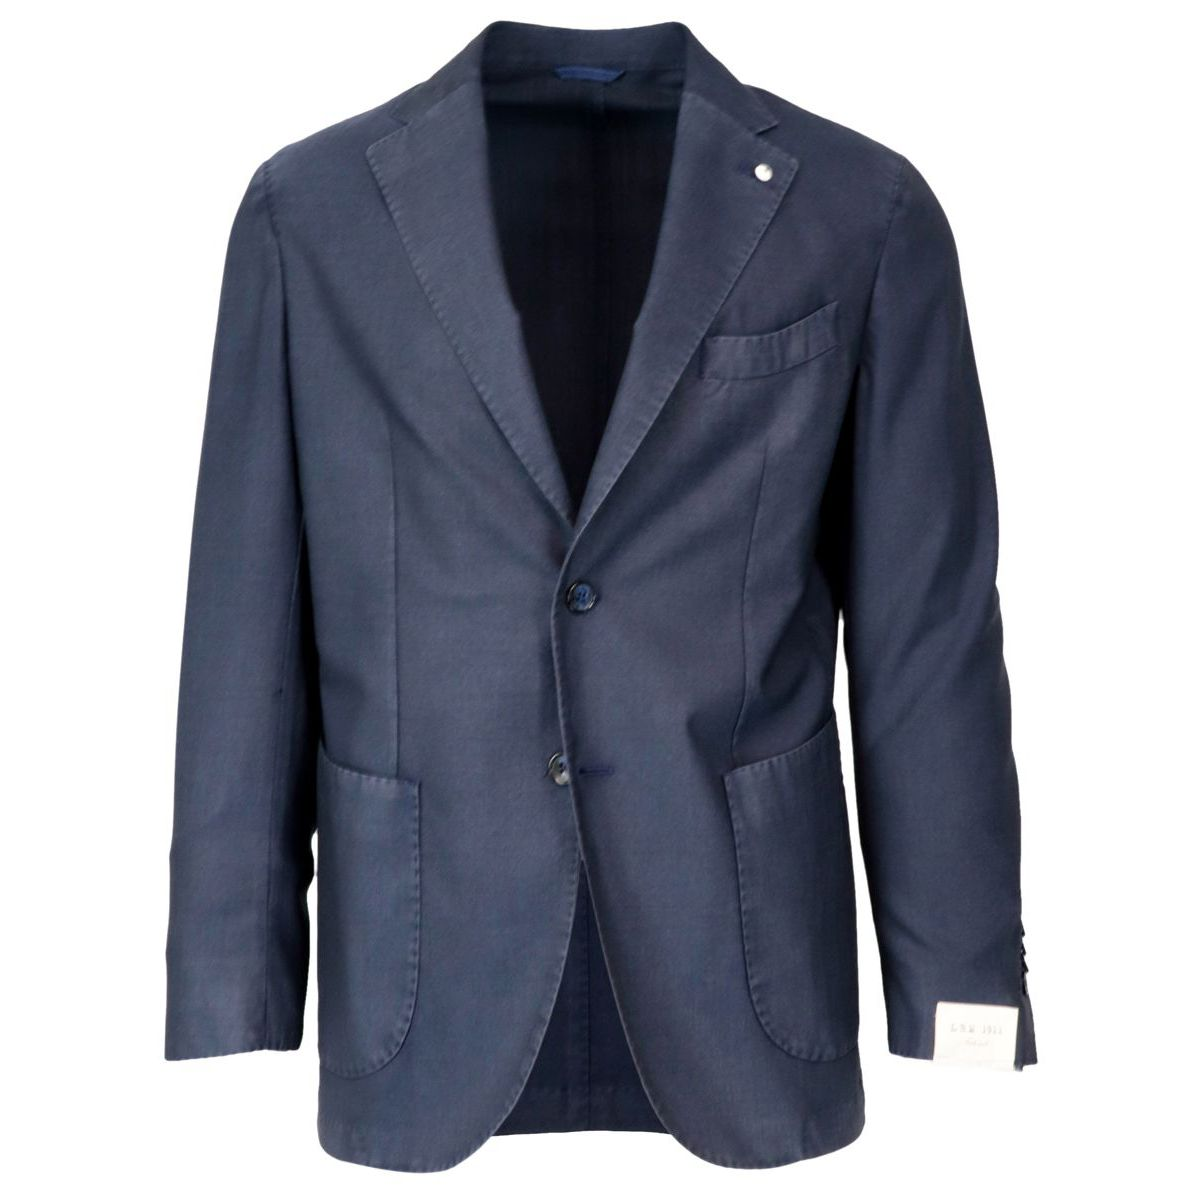 Two-button jacket in washed wool Blue L.B.M. 1911